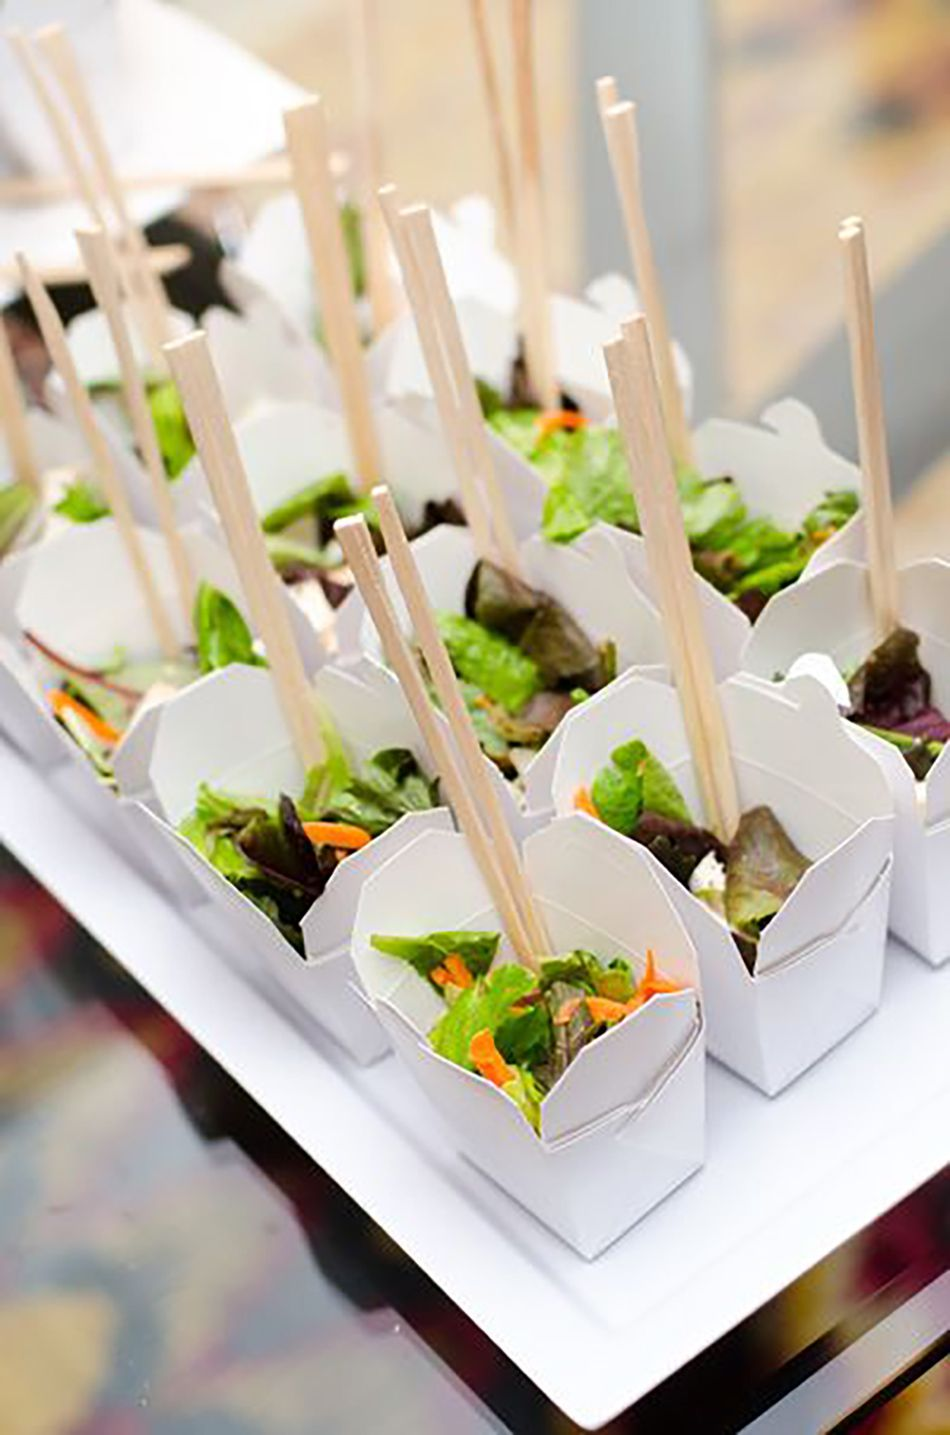 Takeaway boxes of food with chop sticks Wedding food